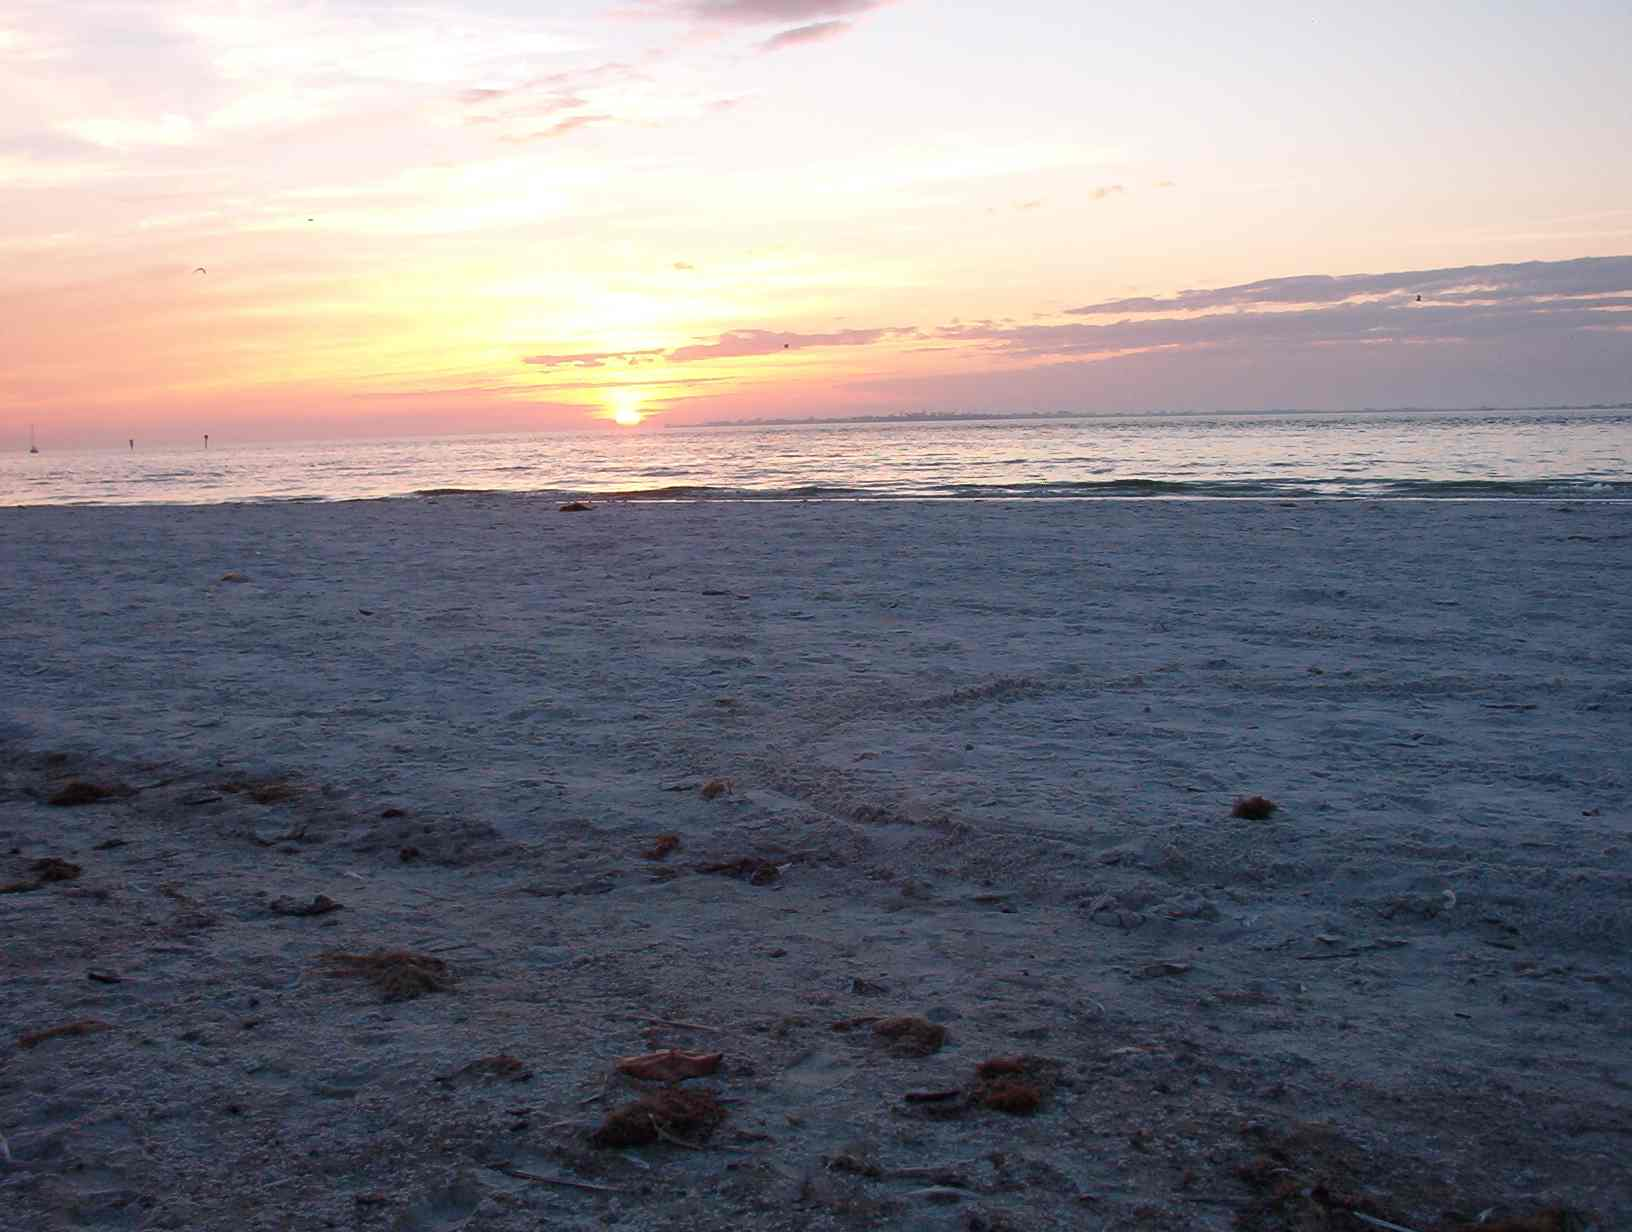 Moon Tide was composed in Fort Meyers, FL, on 'turtle island' the place where sea turtles lay their eggs.